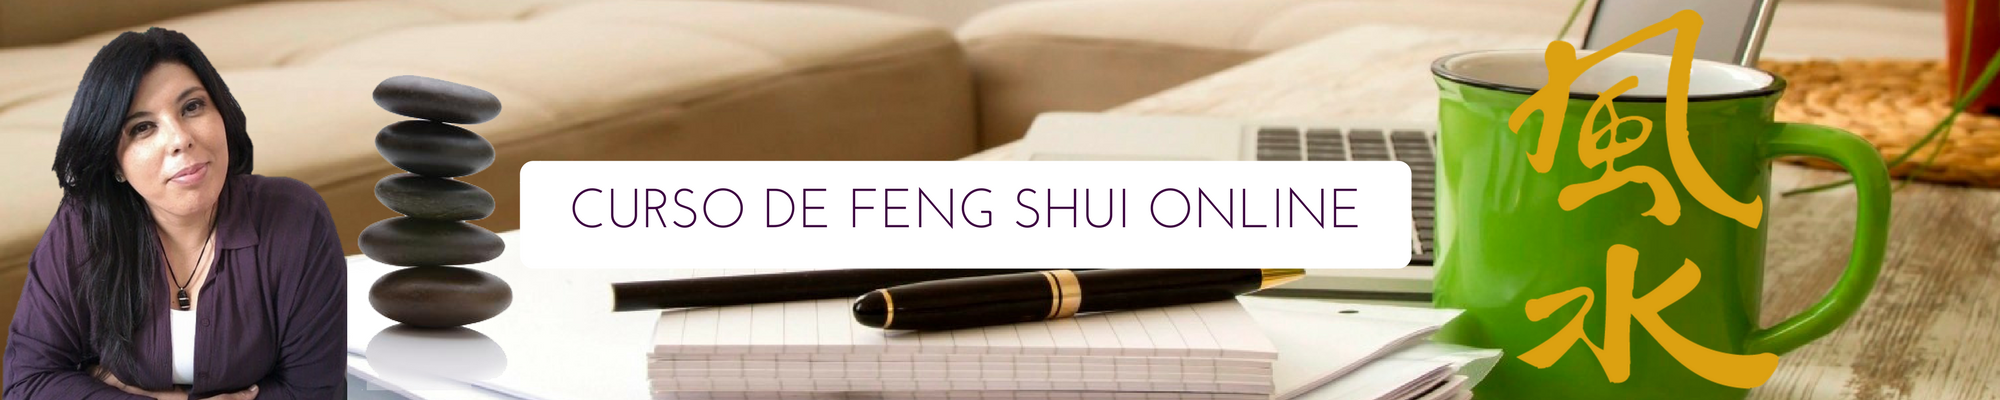 CURSO DE FENG SHUI OCCIDENTAL ONLINE